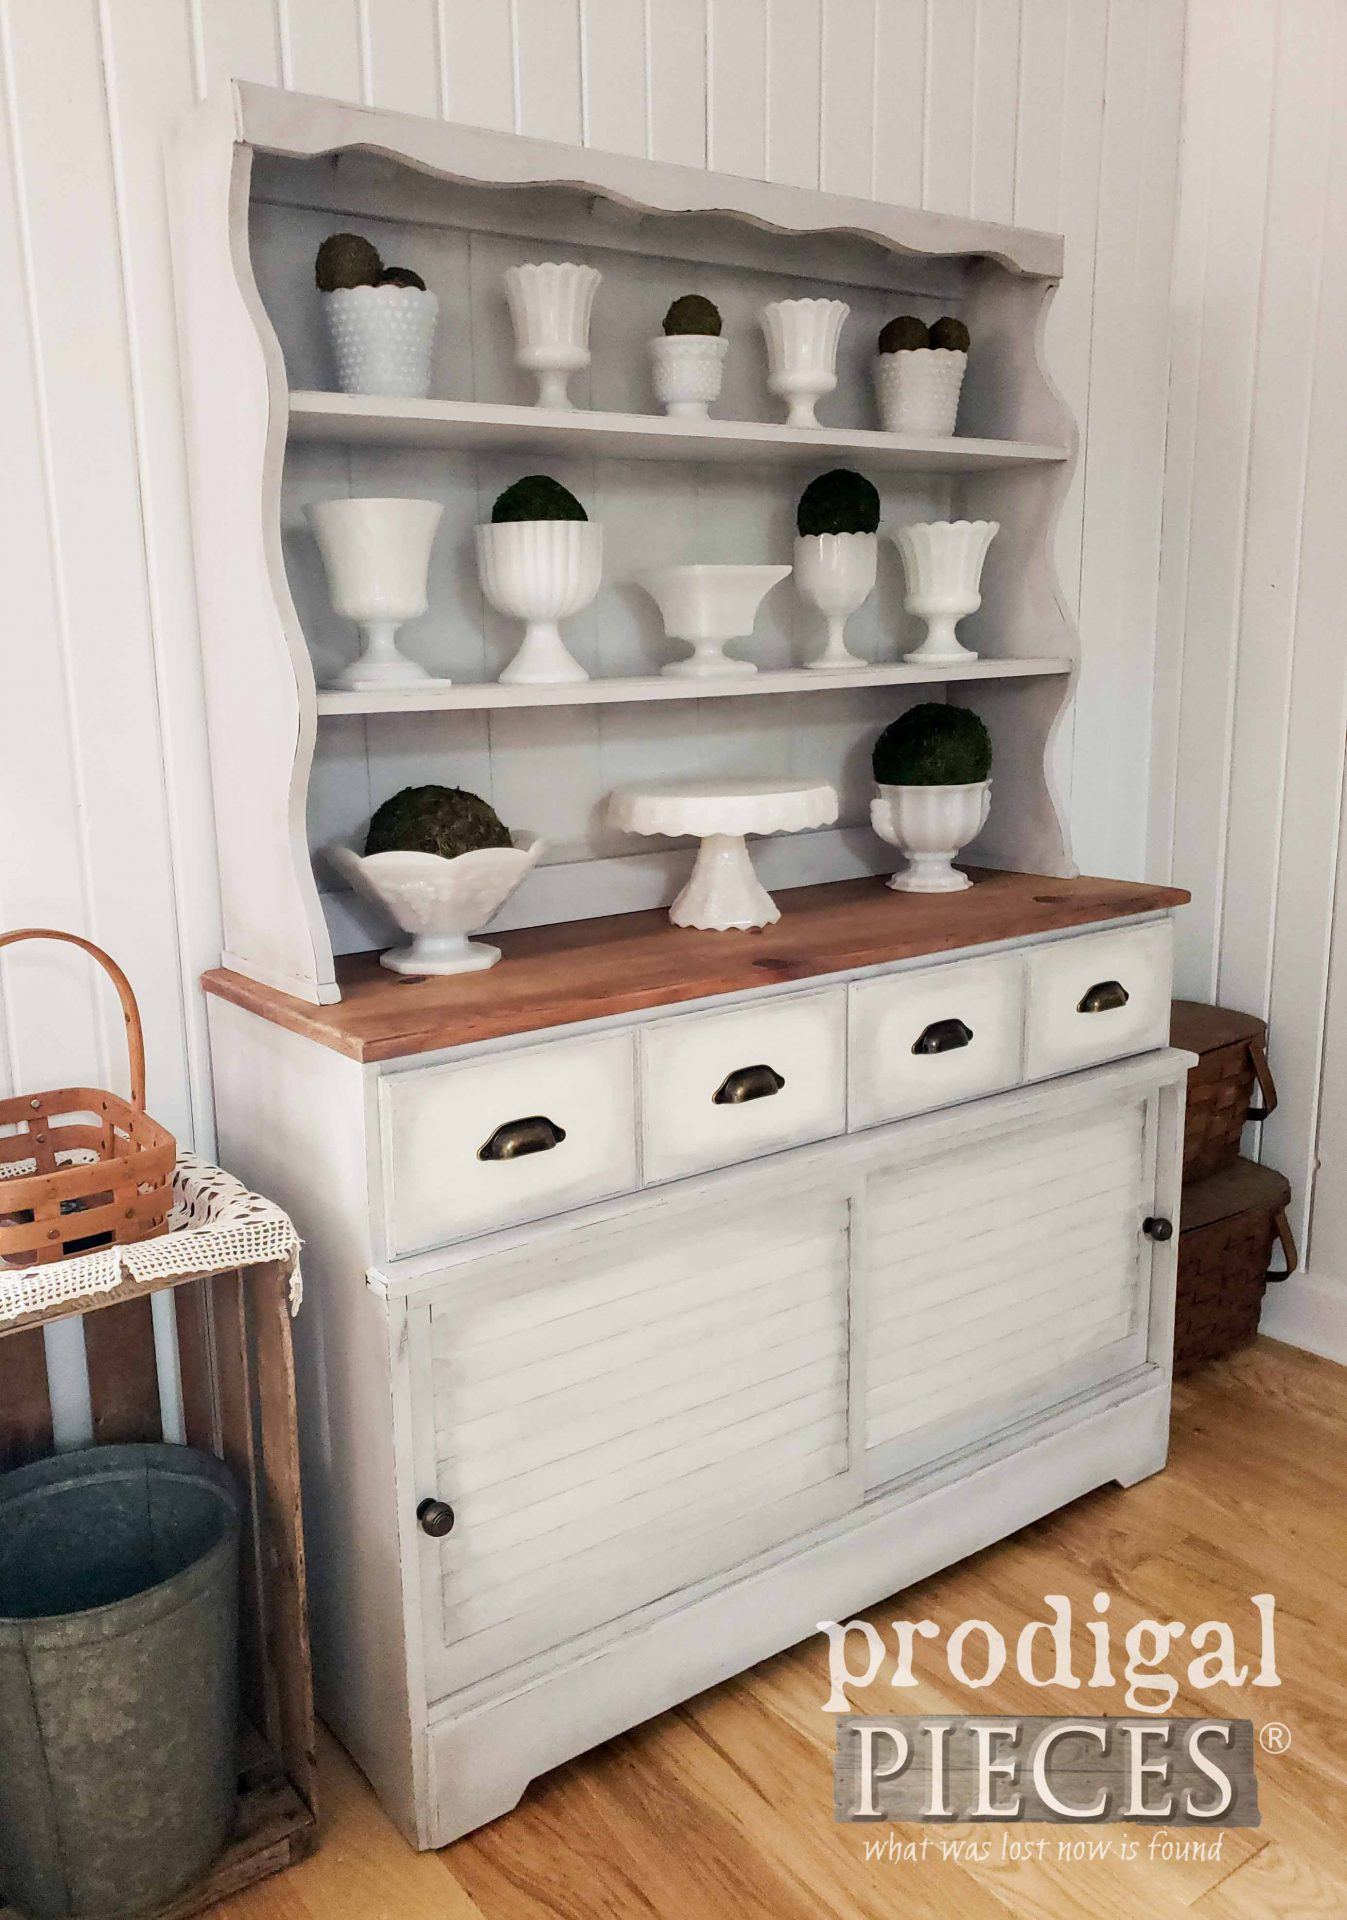 Side View of Vintage Farmhouse Hutch after Makeover by Larissa of Prodigal Pieces | prodigalpieces.com #prodigalpieces #farmhouse #kitchen #home #furniture #homedecor